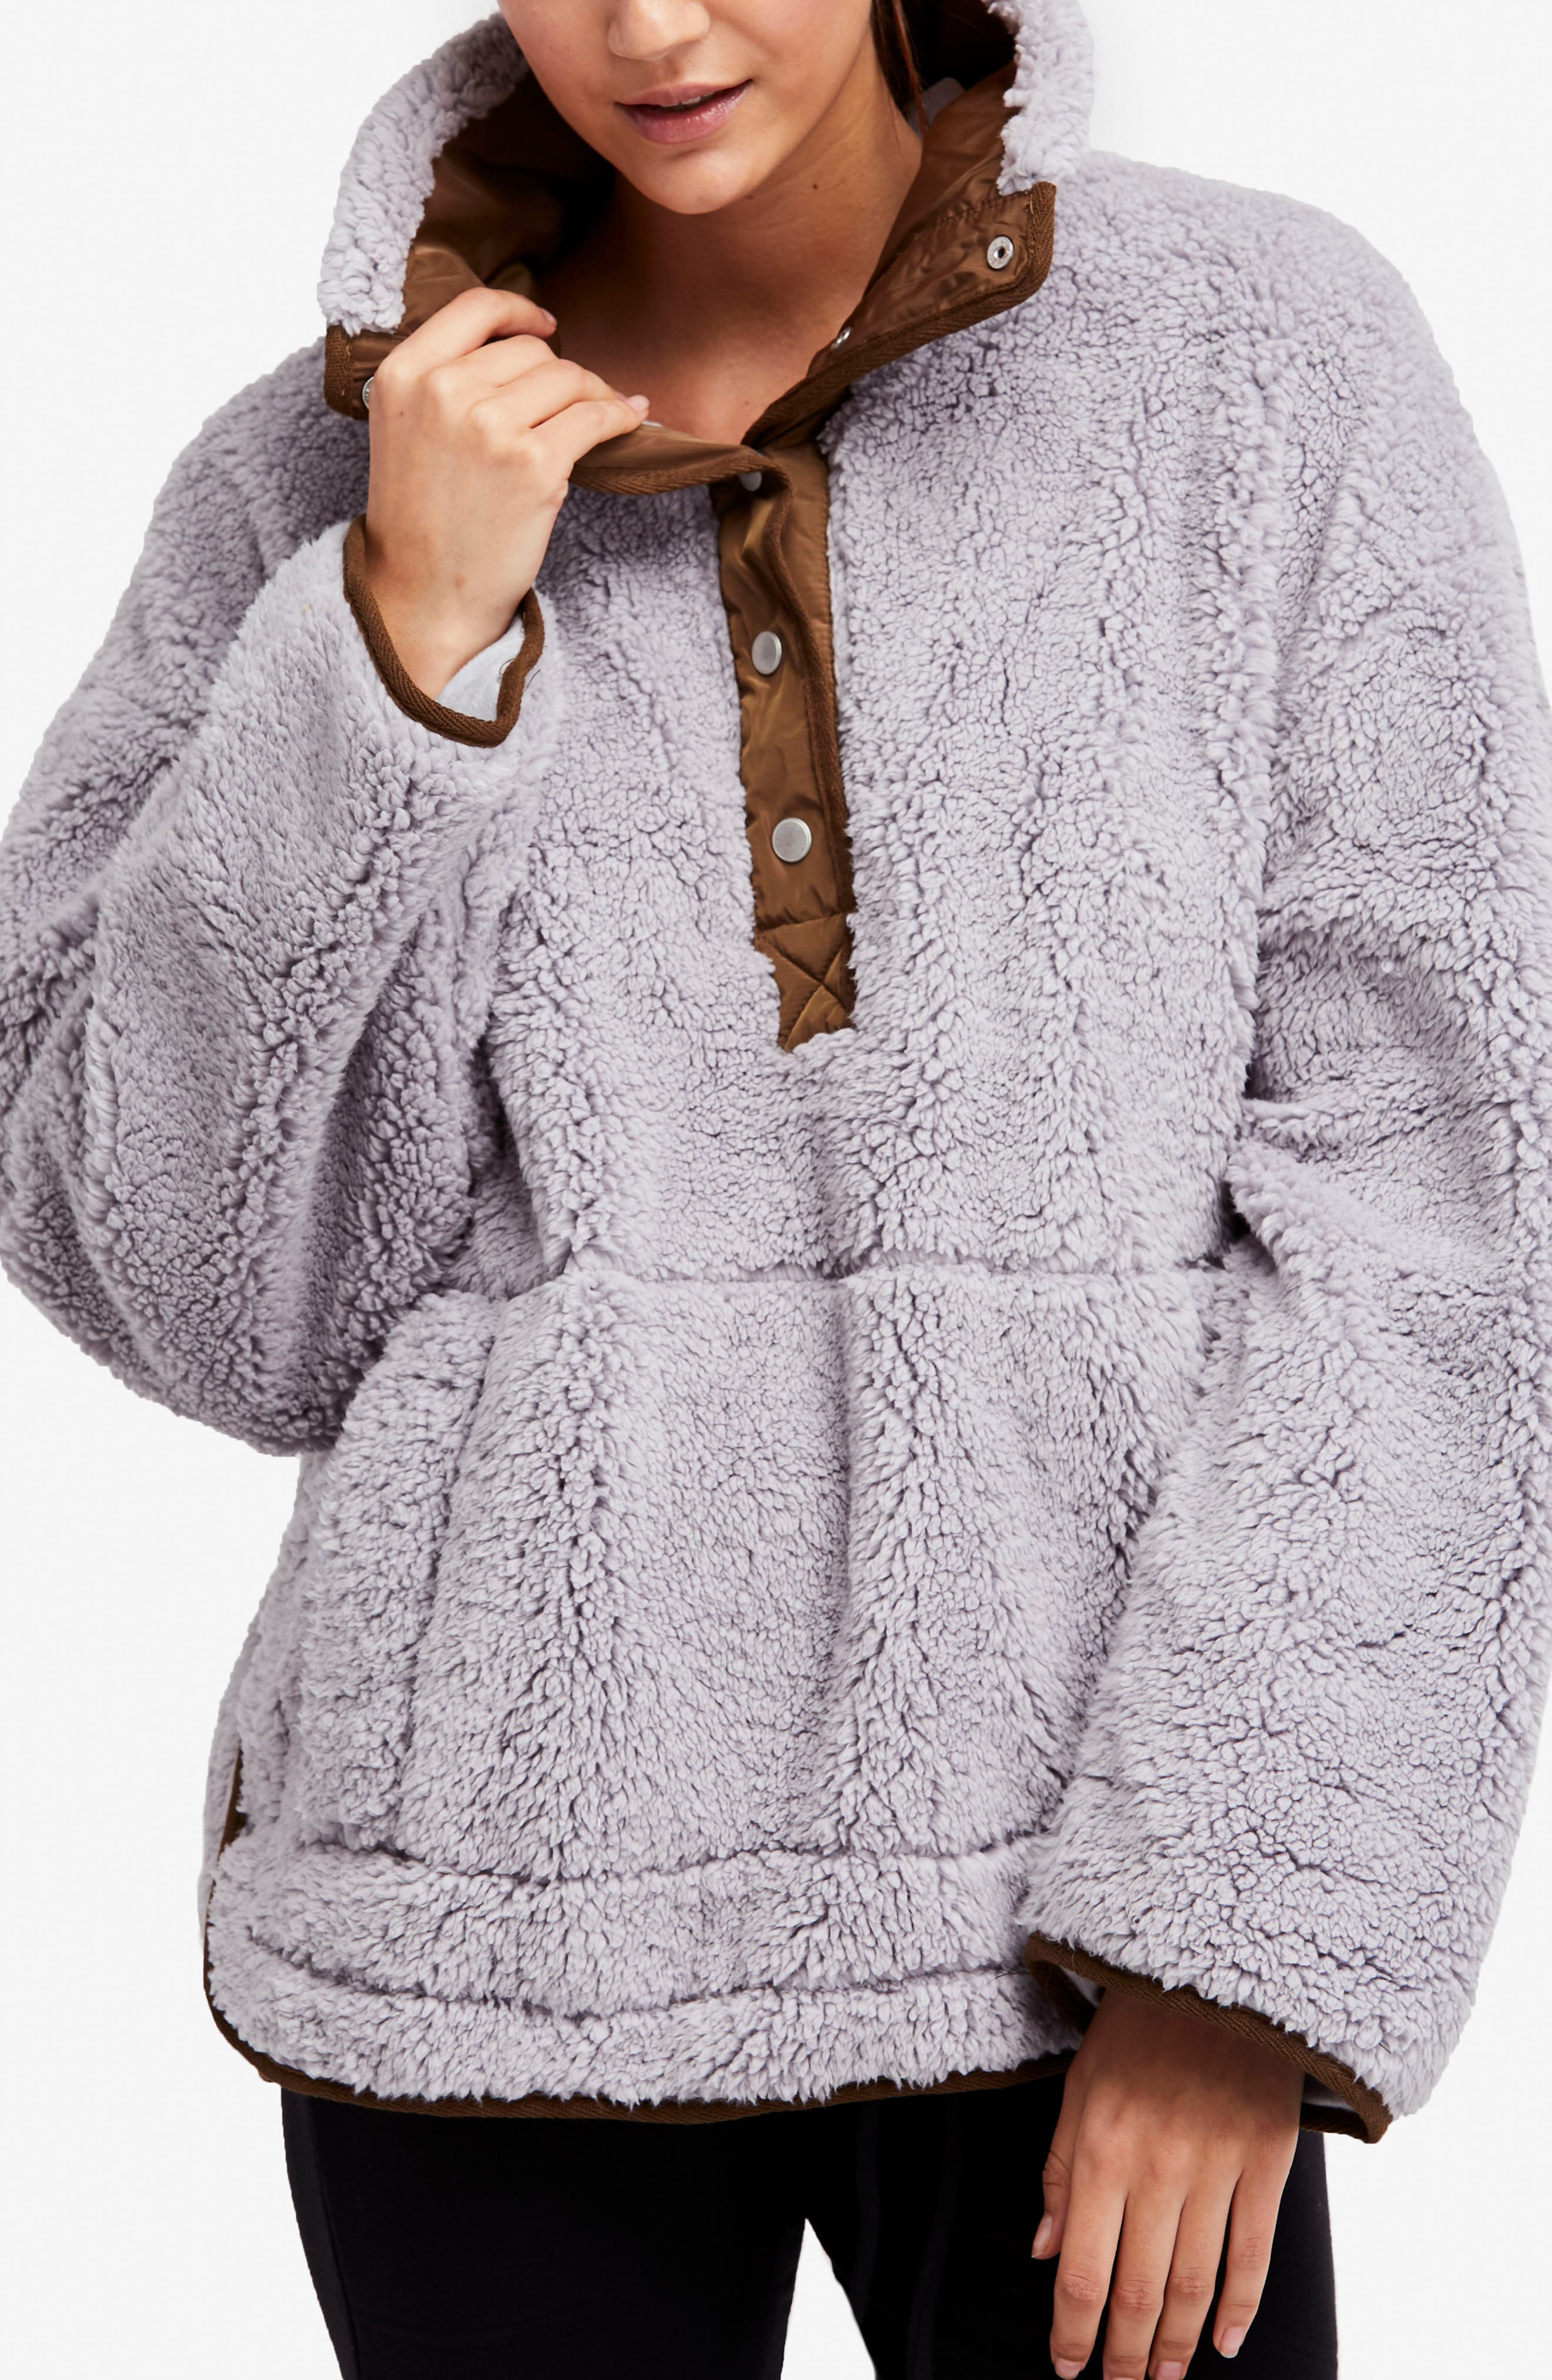 Free People Oh So Cozy Fleece Pullover,                             Alternate thumbnail 2, color,                             Grey